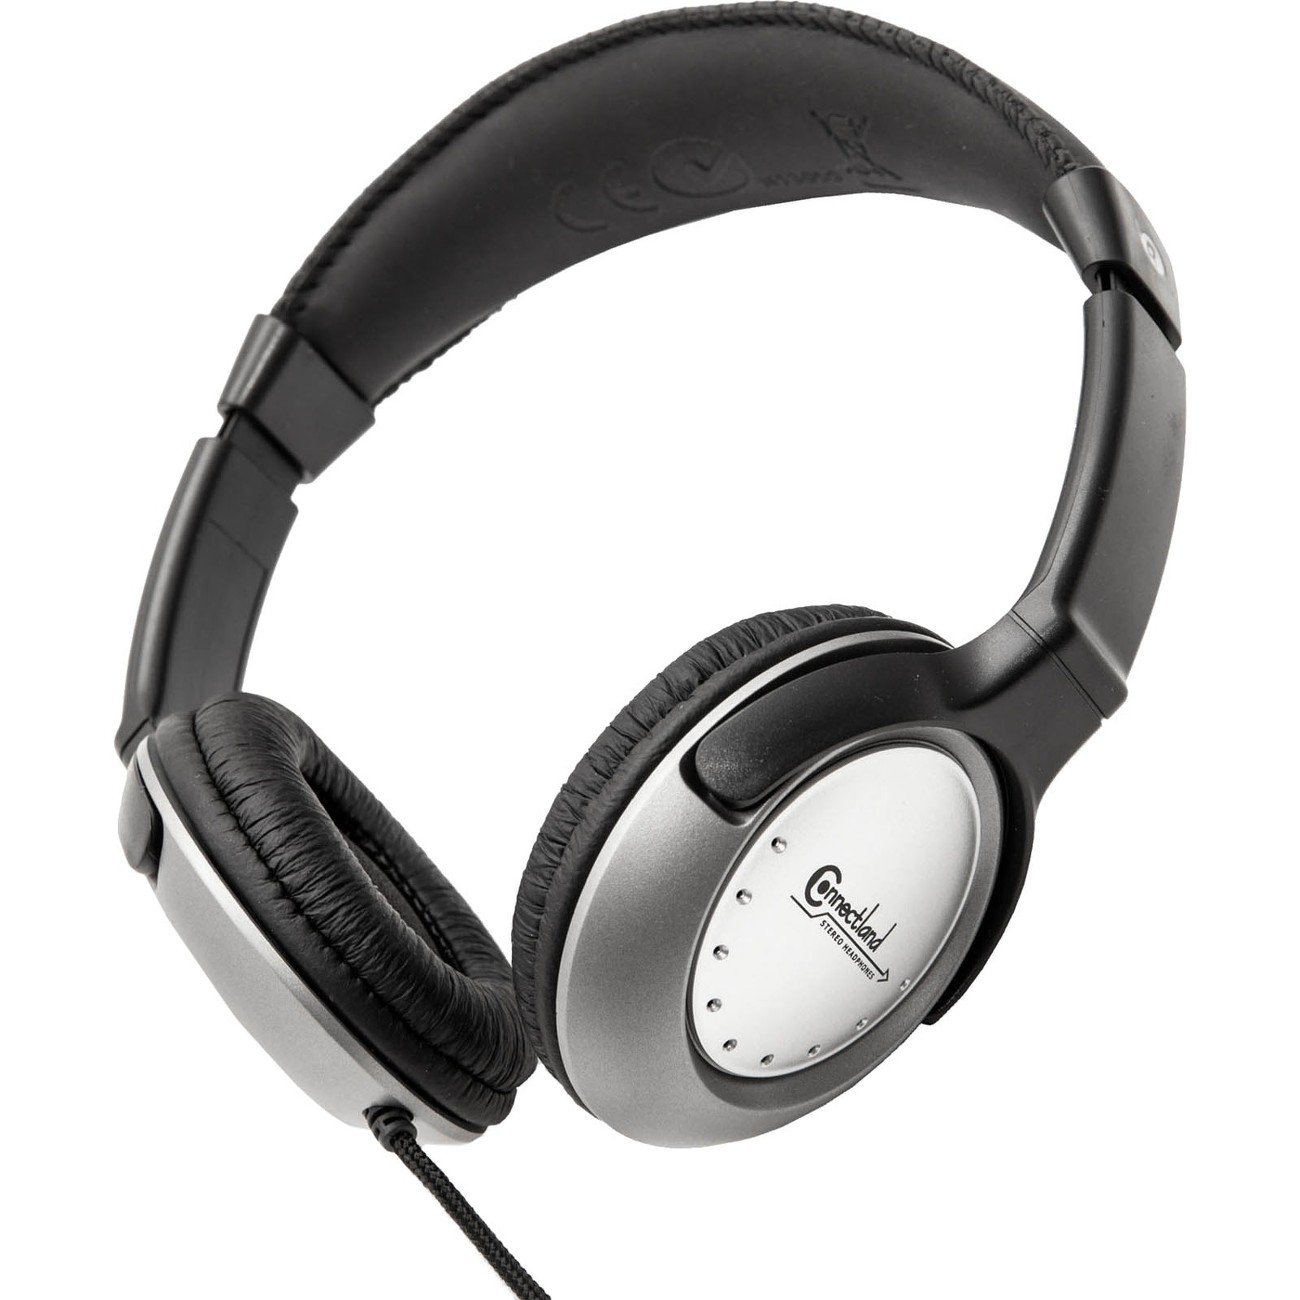 CONNECTLAND STEREO HEADPHONES DRIVERS FOR WINDOWS VISTA